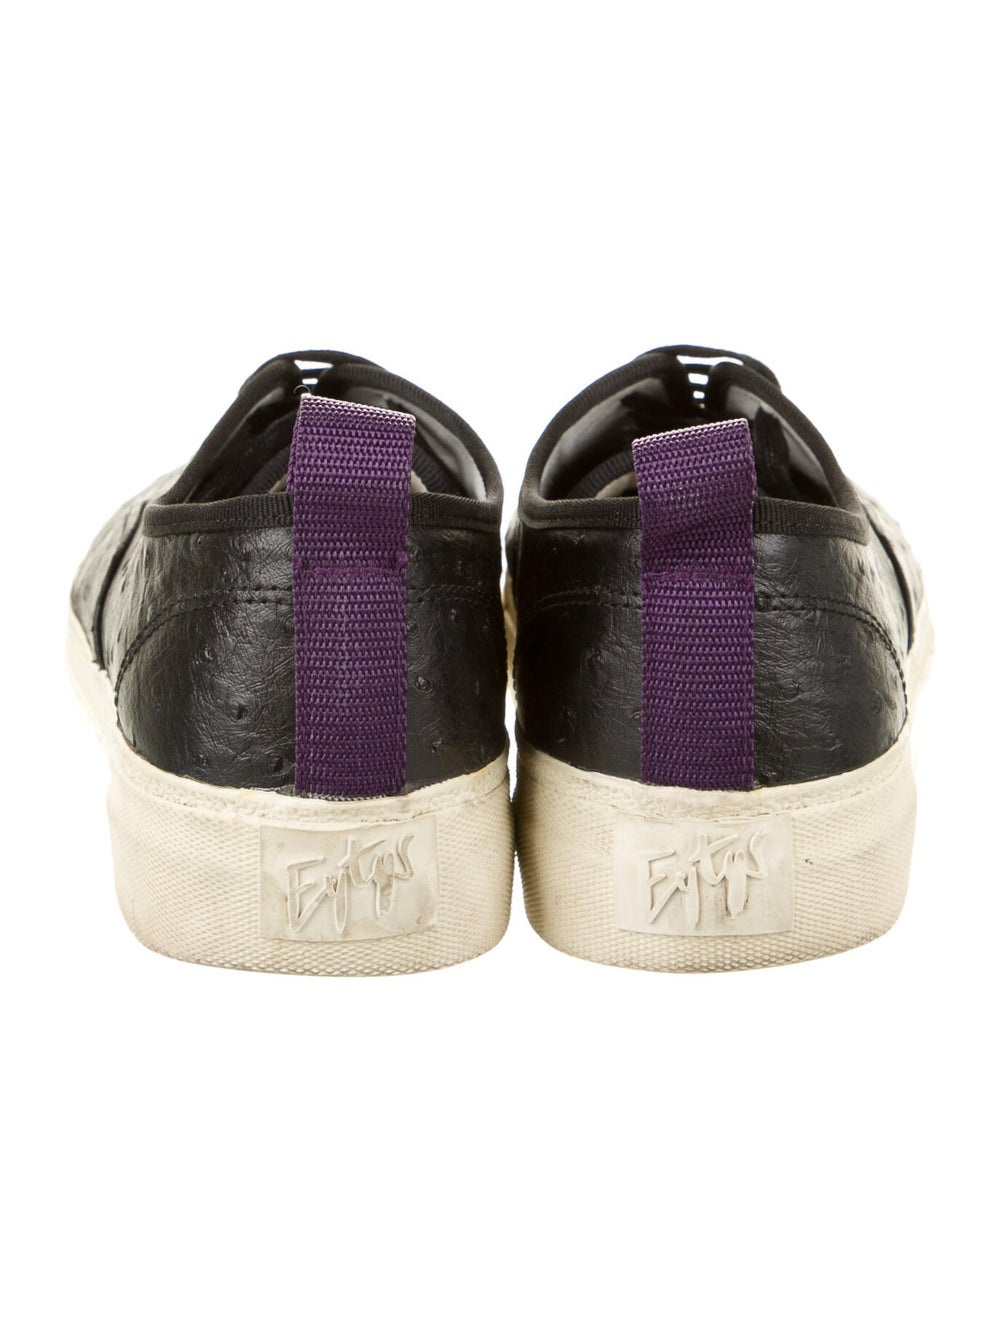 Eytys Ostrich Sneakers Black - image 4